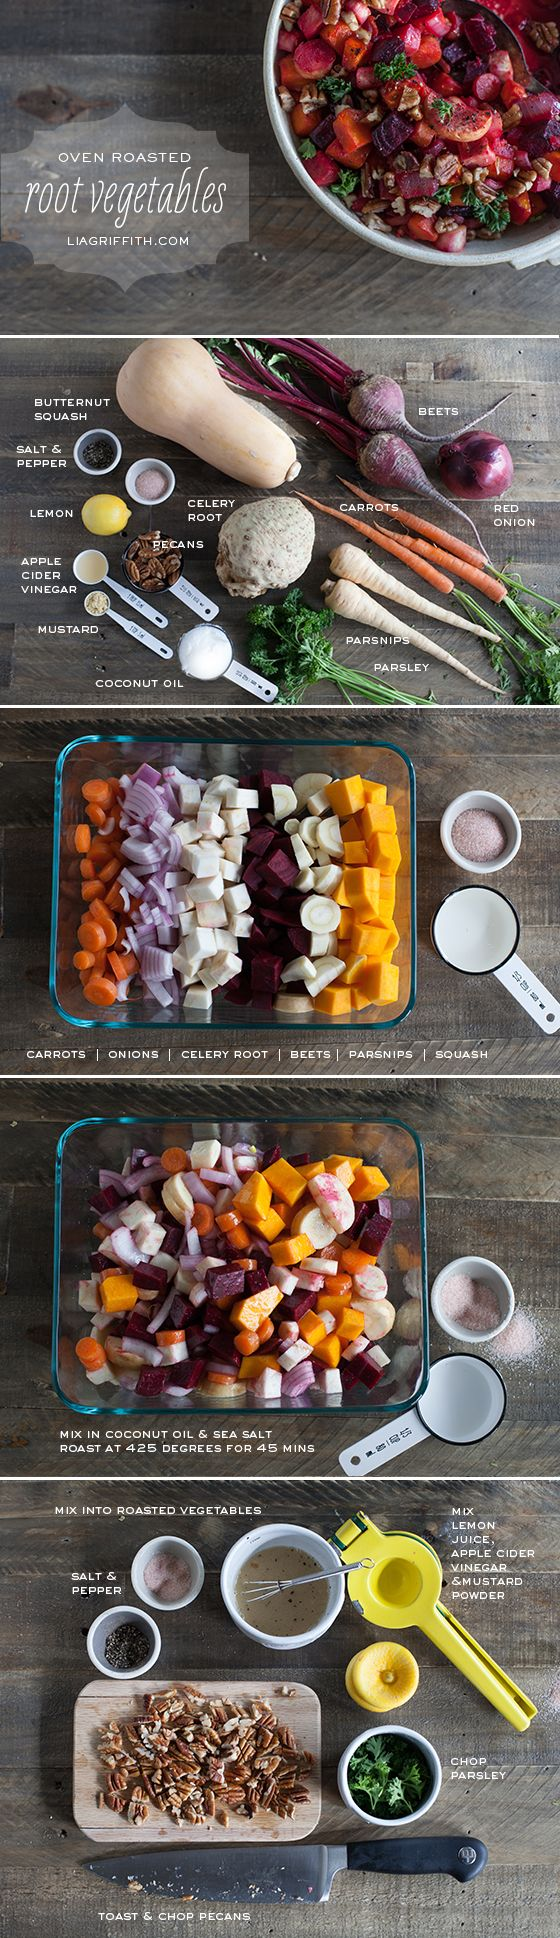 Food Lover Friday: Oven Roasted Root Vegetables :: Hey... Why not? Not sure about the celeriac but I may have a go because we just love oven roasted vegetables!